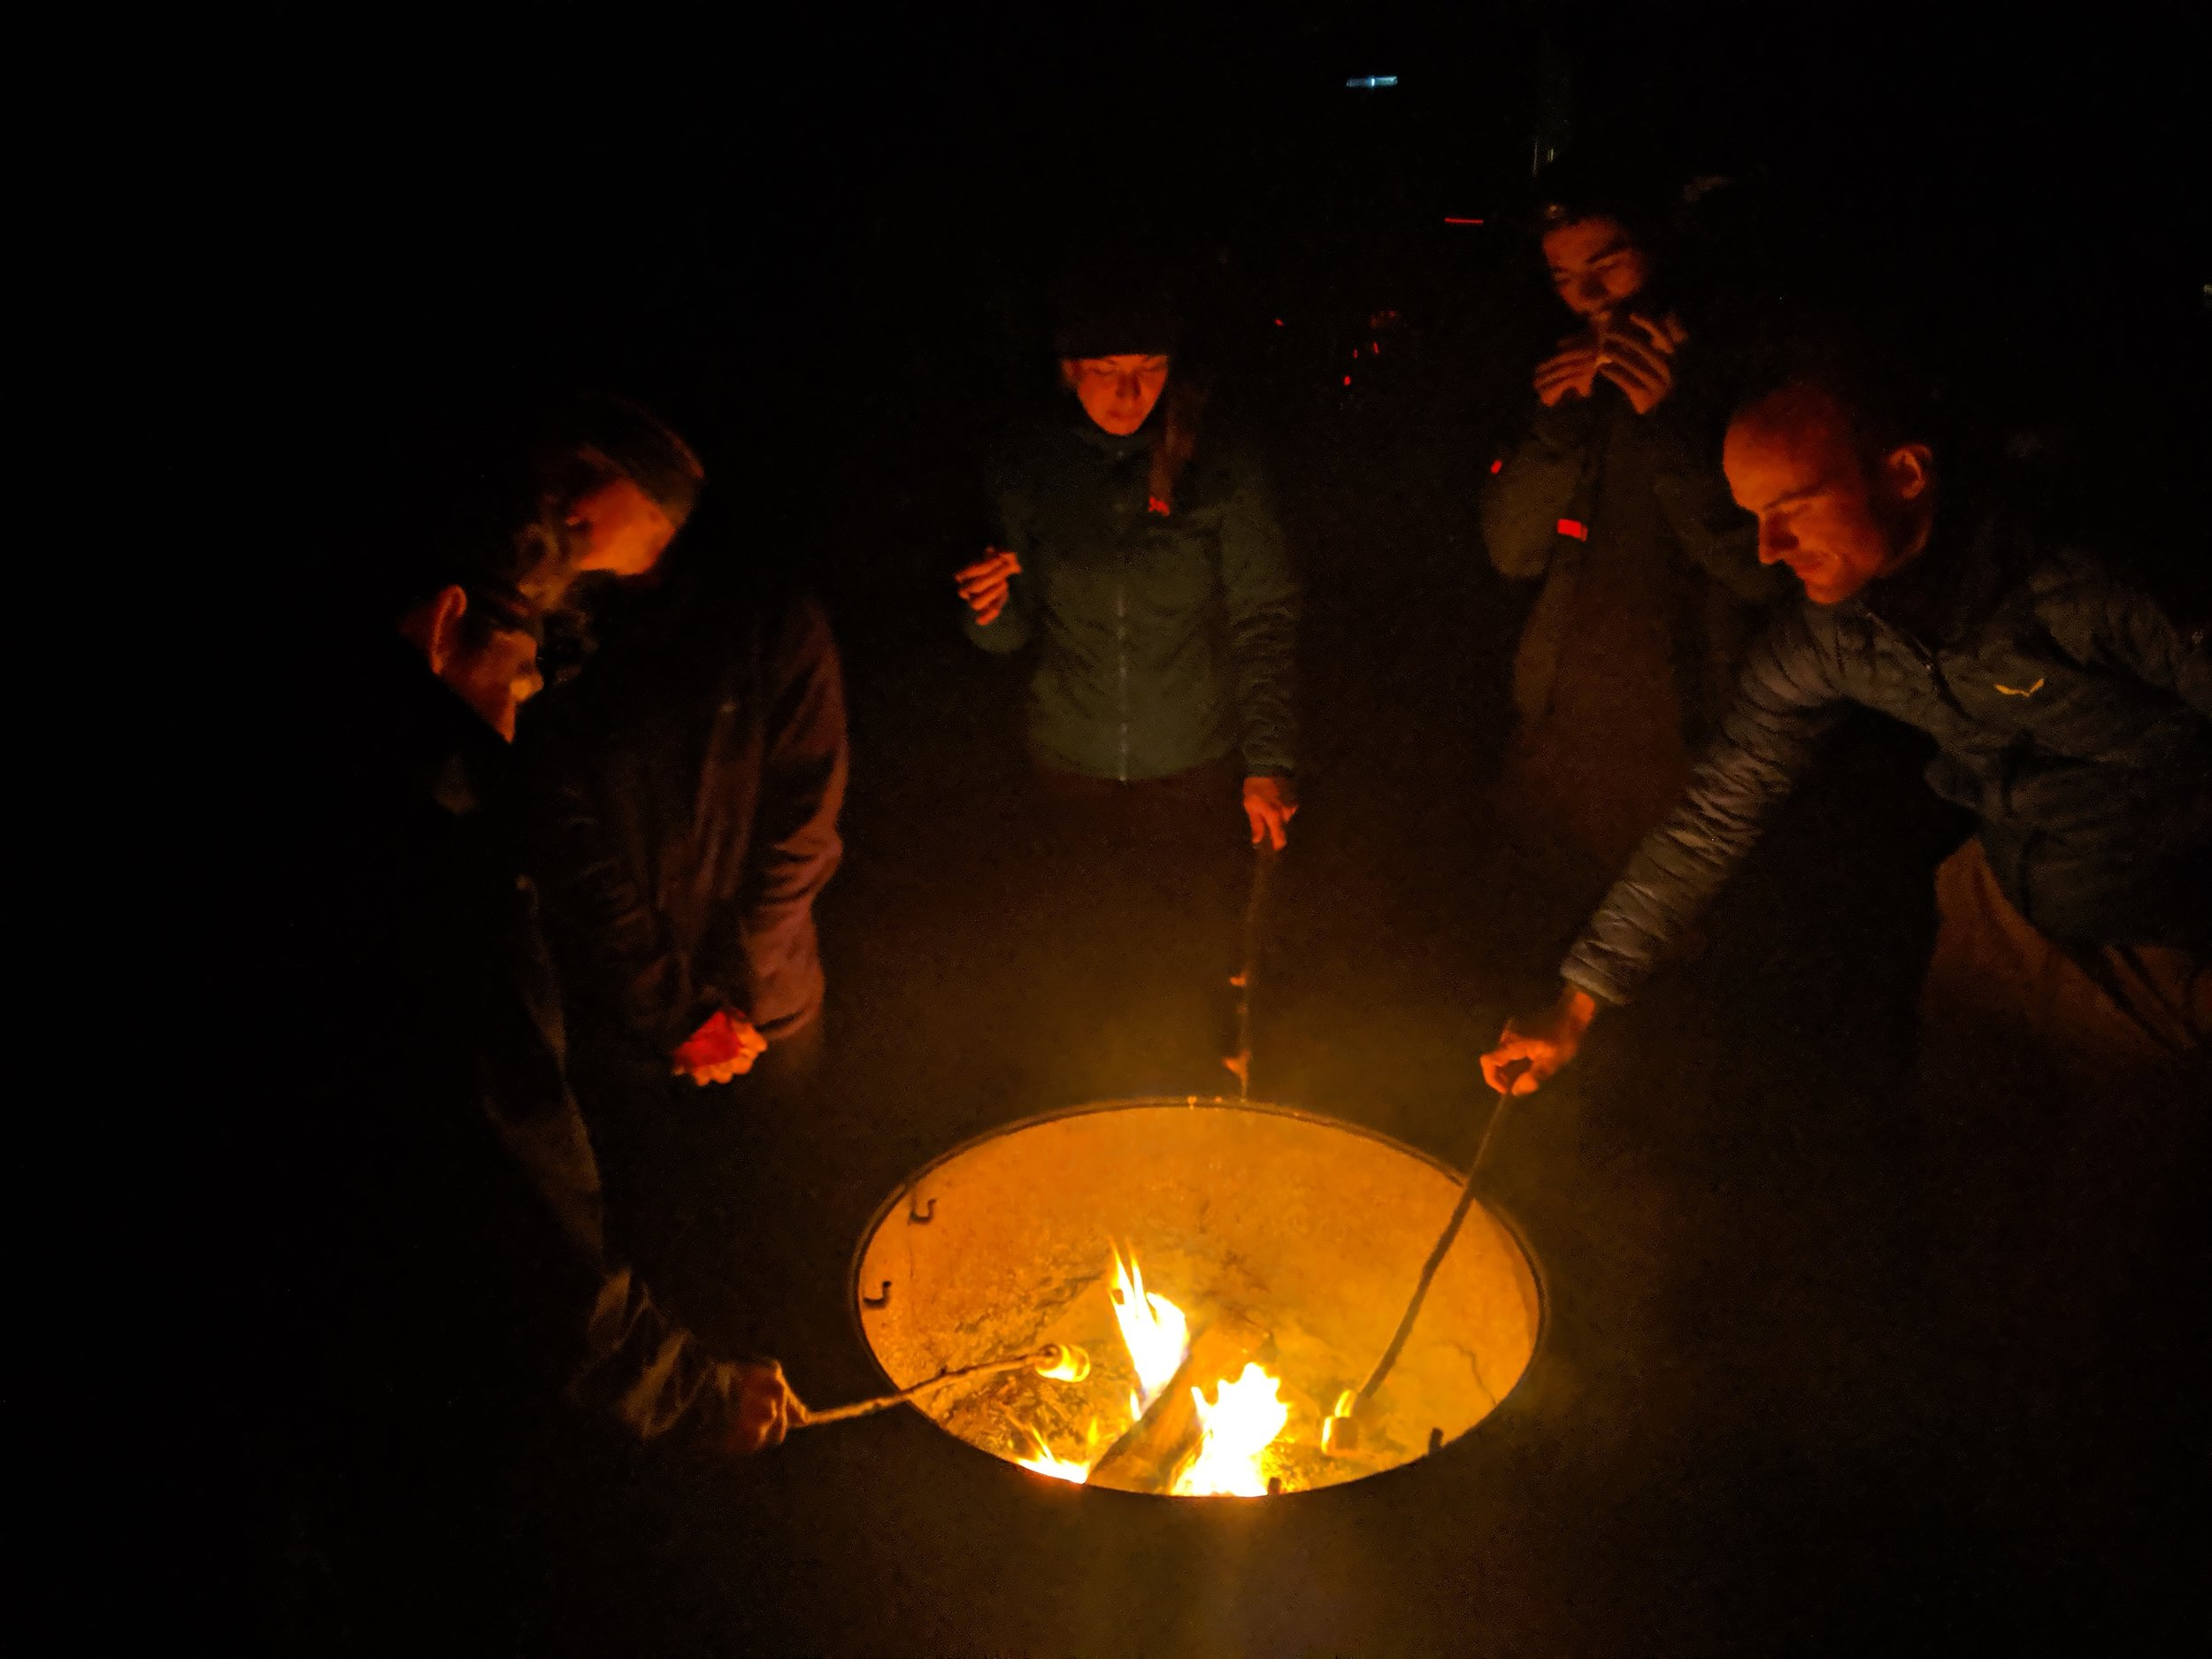 Bikers, forging s'mores